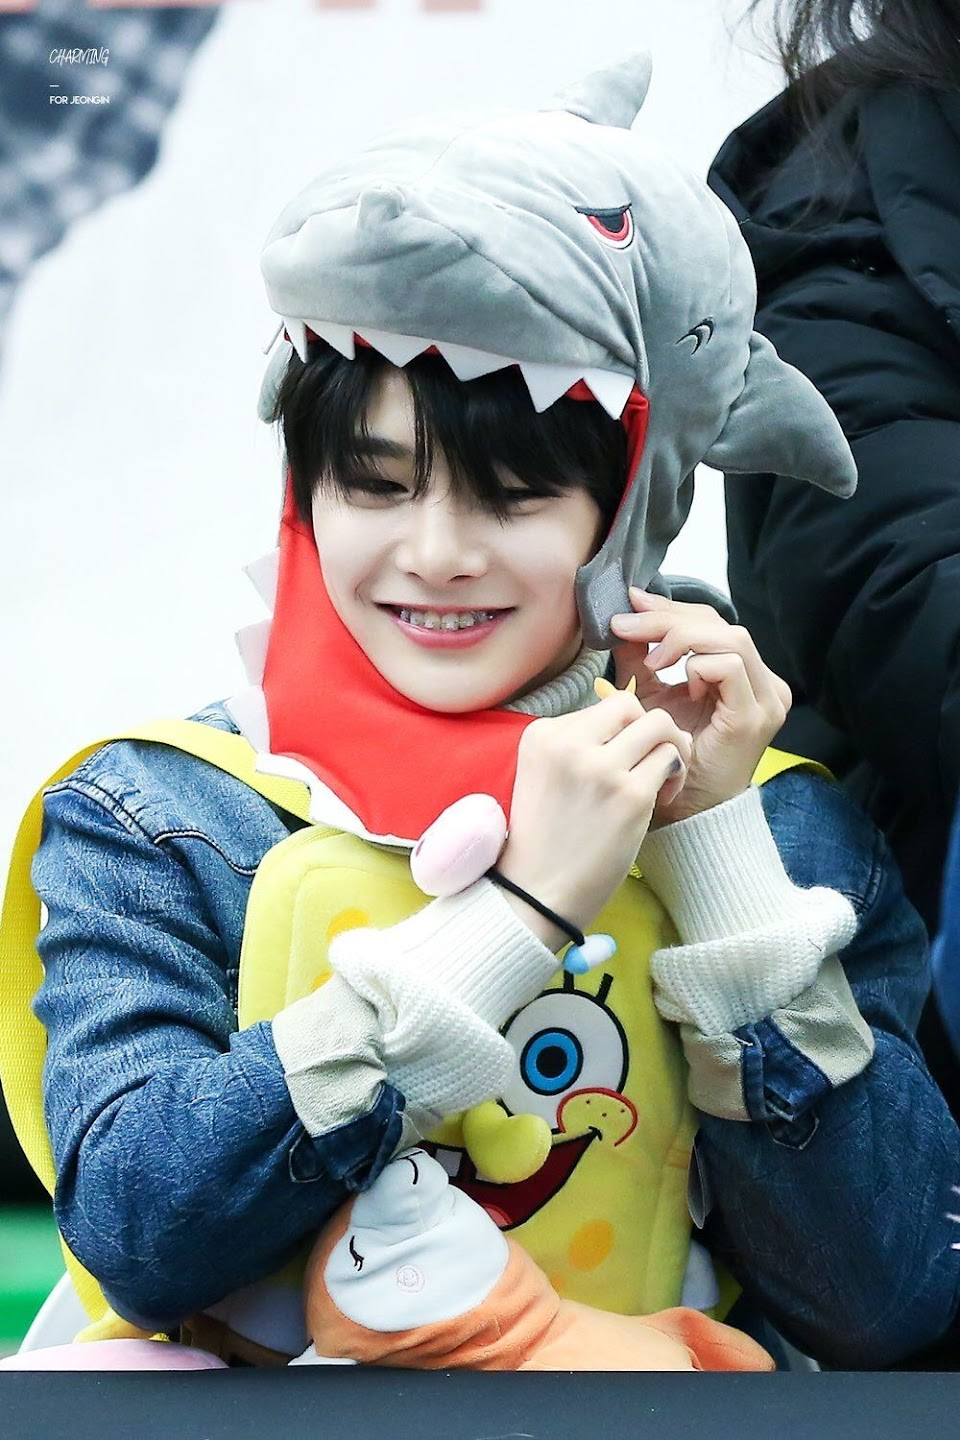 15 stray kids jeongin in